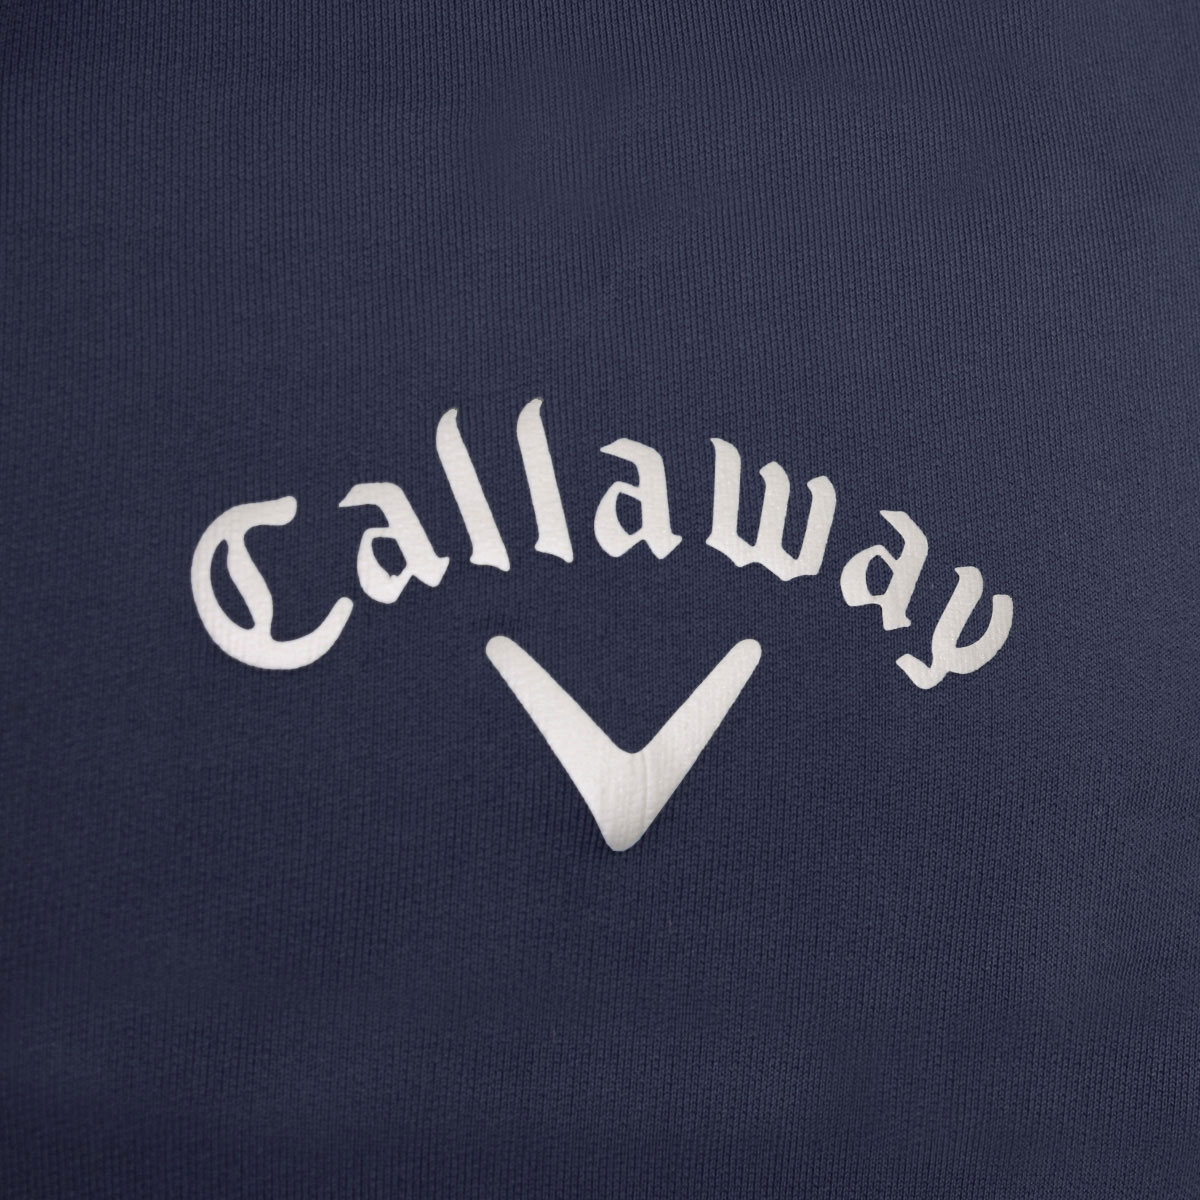 Callaway-Golf-Mens-1-4-Zip-Mid-Layer-Sweater-034-Tour-Logo-034-Pullover-Jumper thumbnail 16